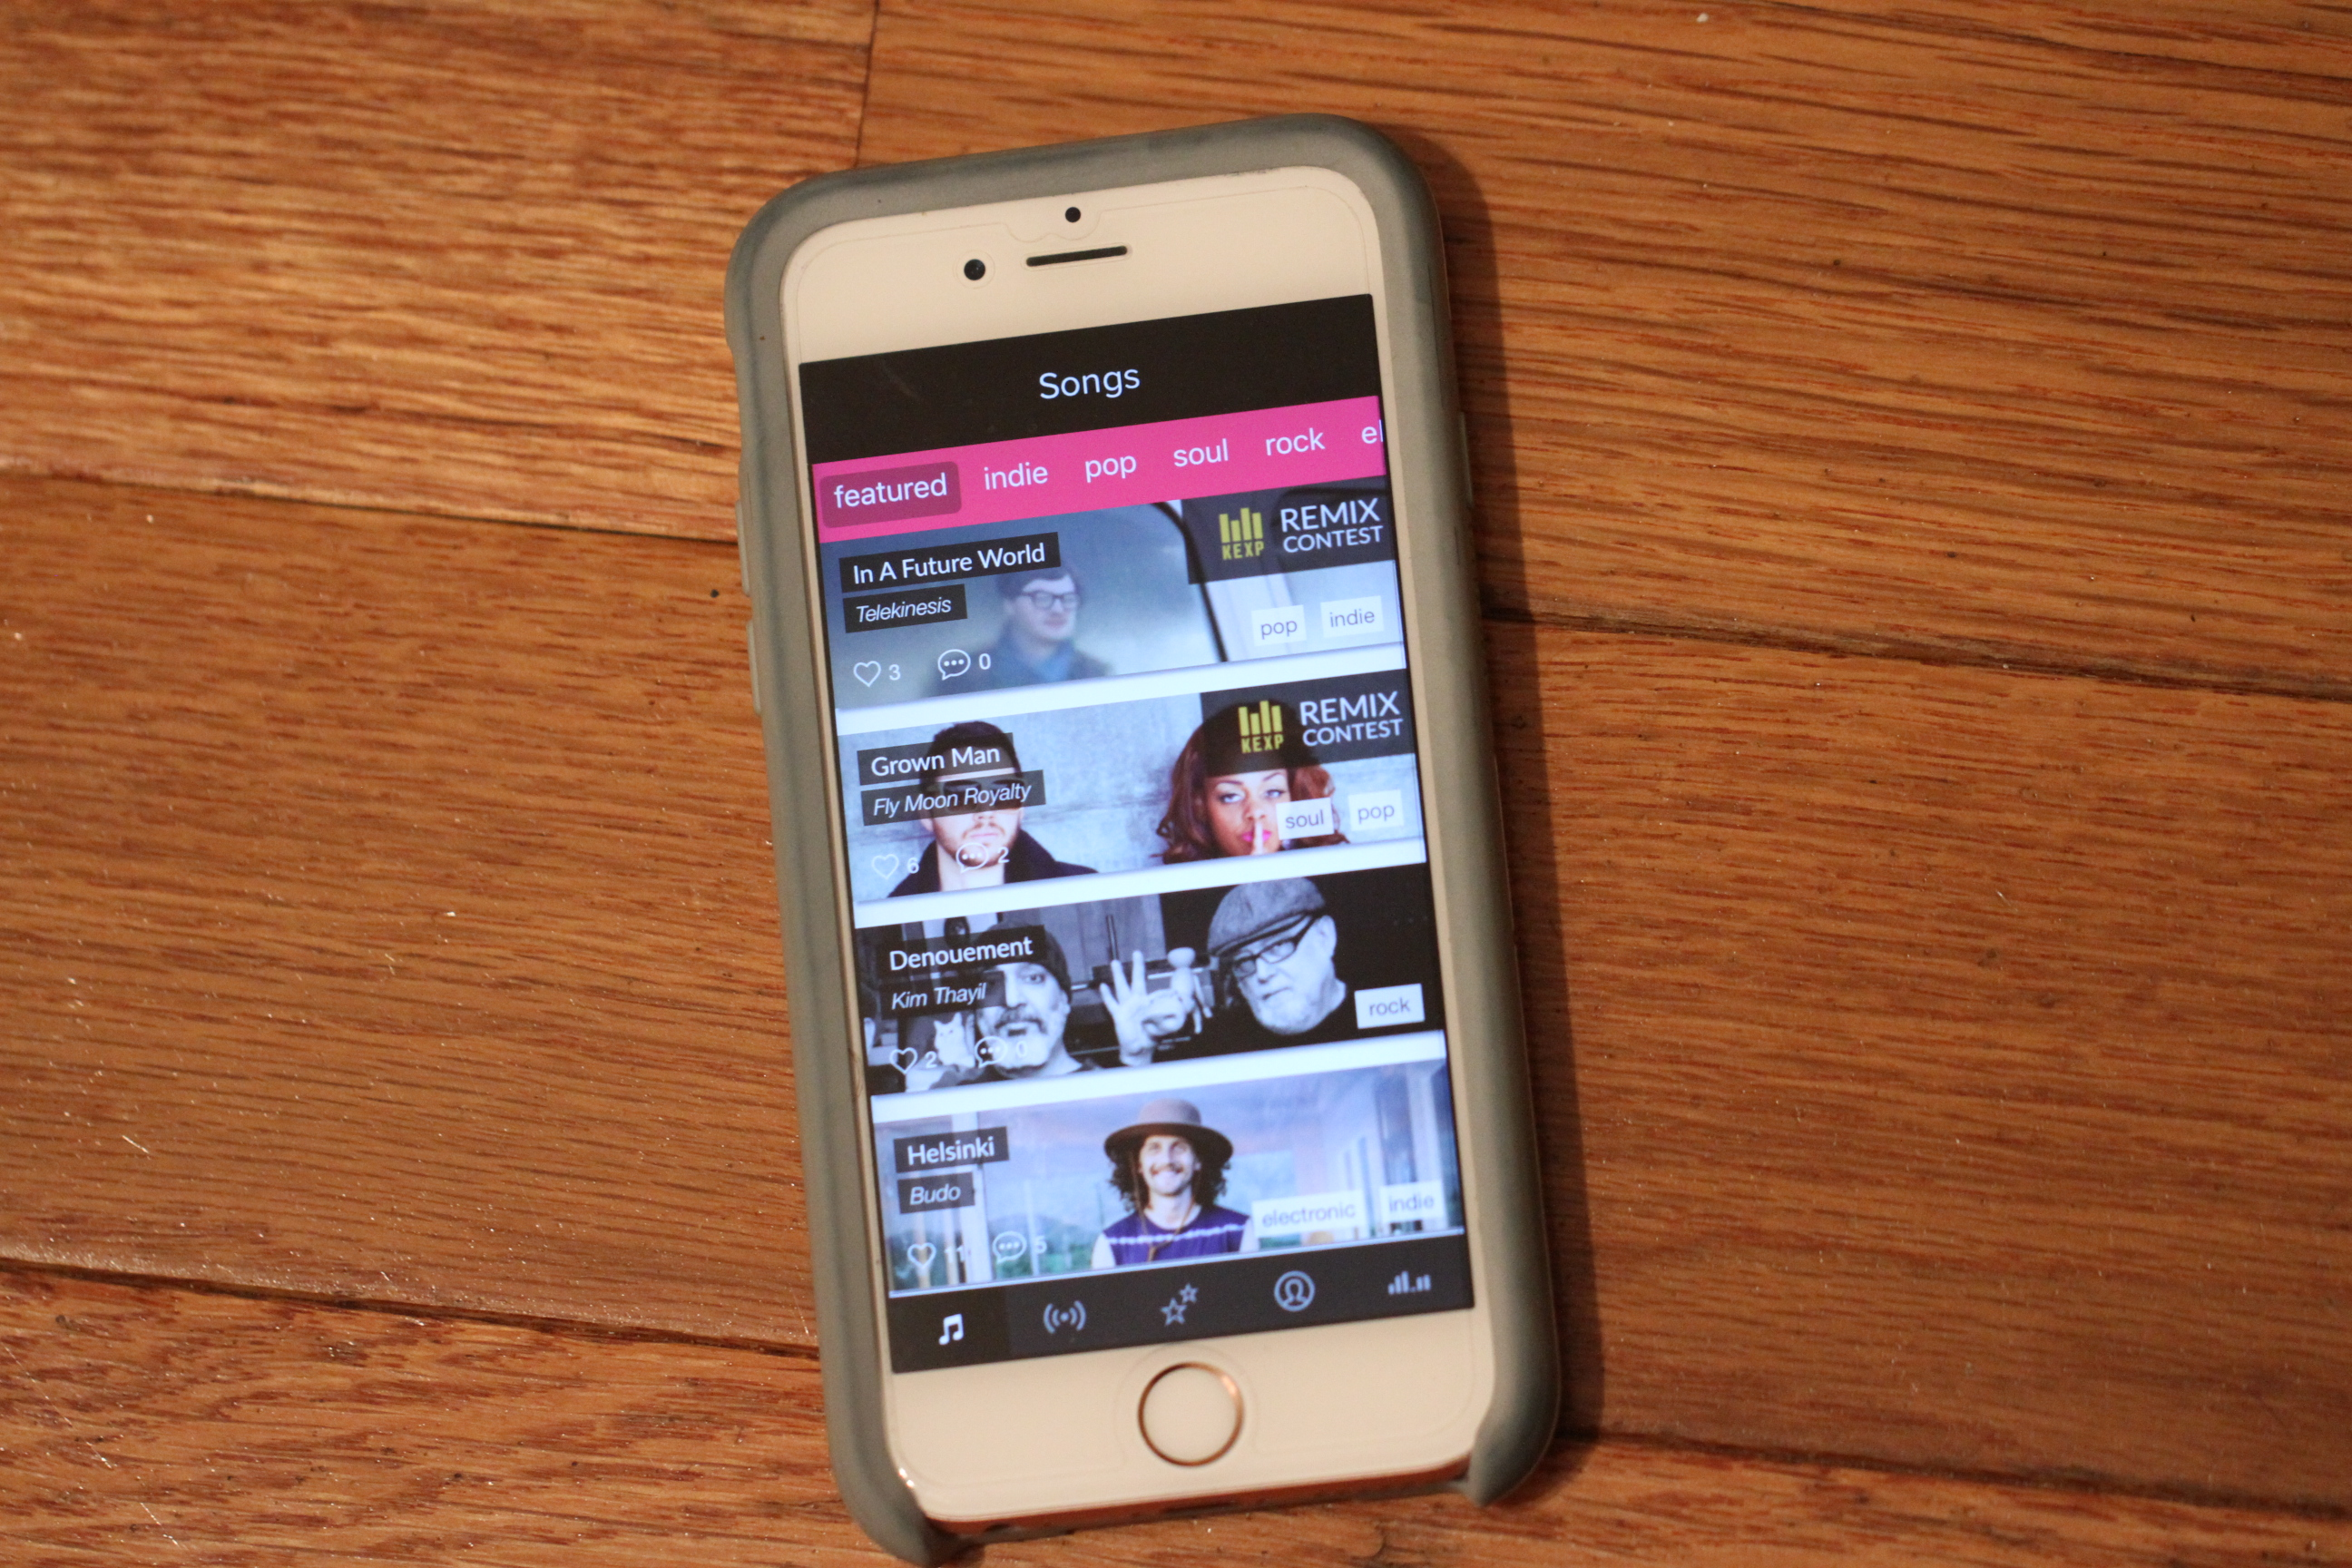 Sub Pop's founder launched a fun music remixing app | TechCrunch